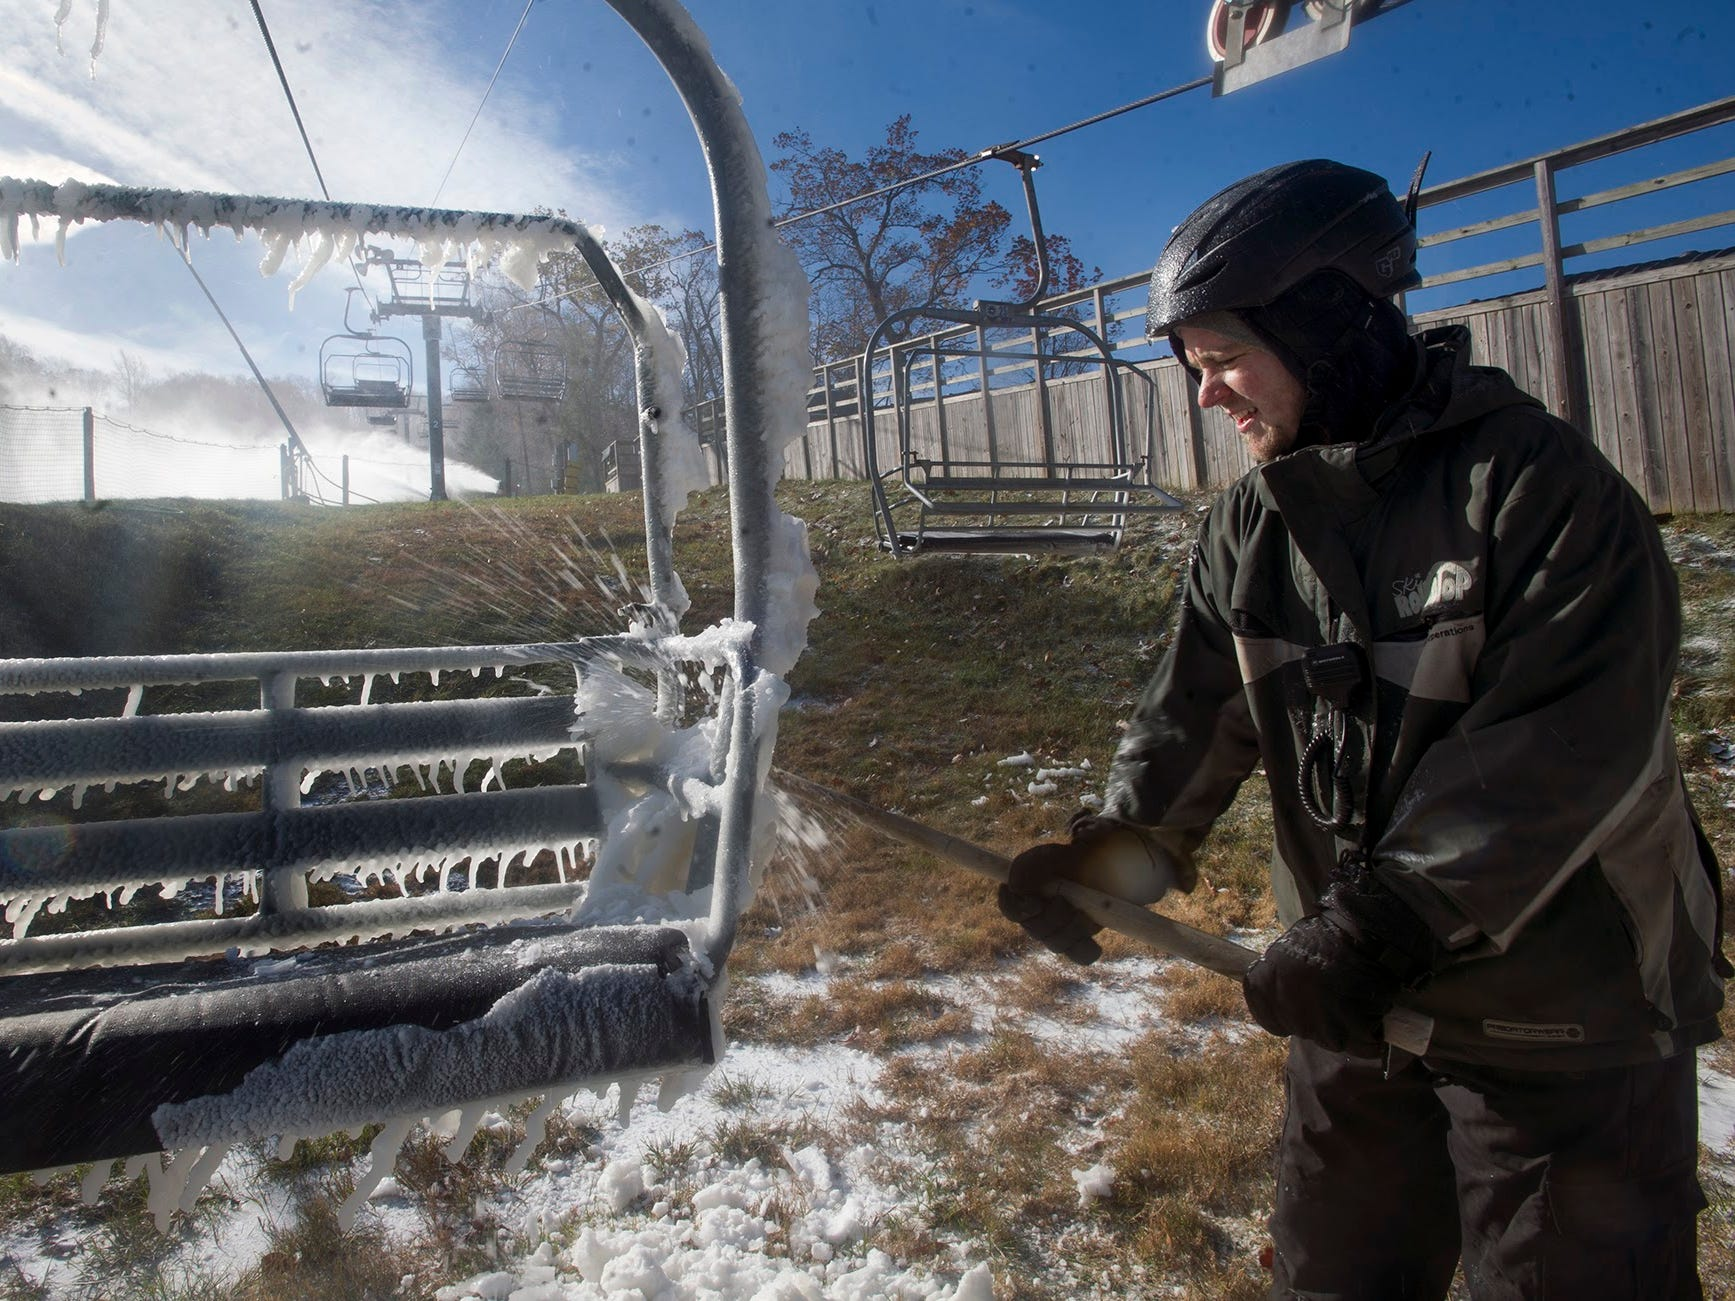 Snow maker Tommy Levendusky knocks early snow making ice off a lift chair as guns are turned on and aimed November 18, 2014.